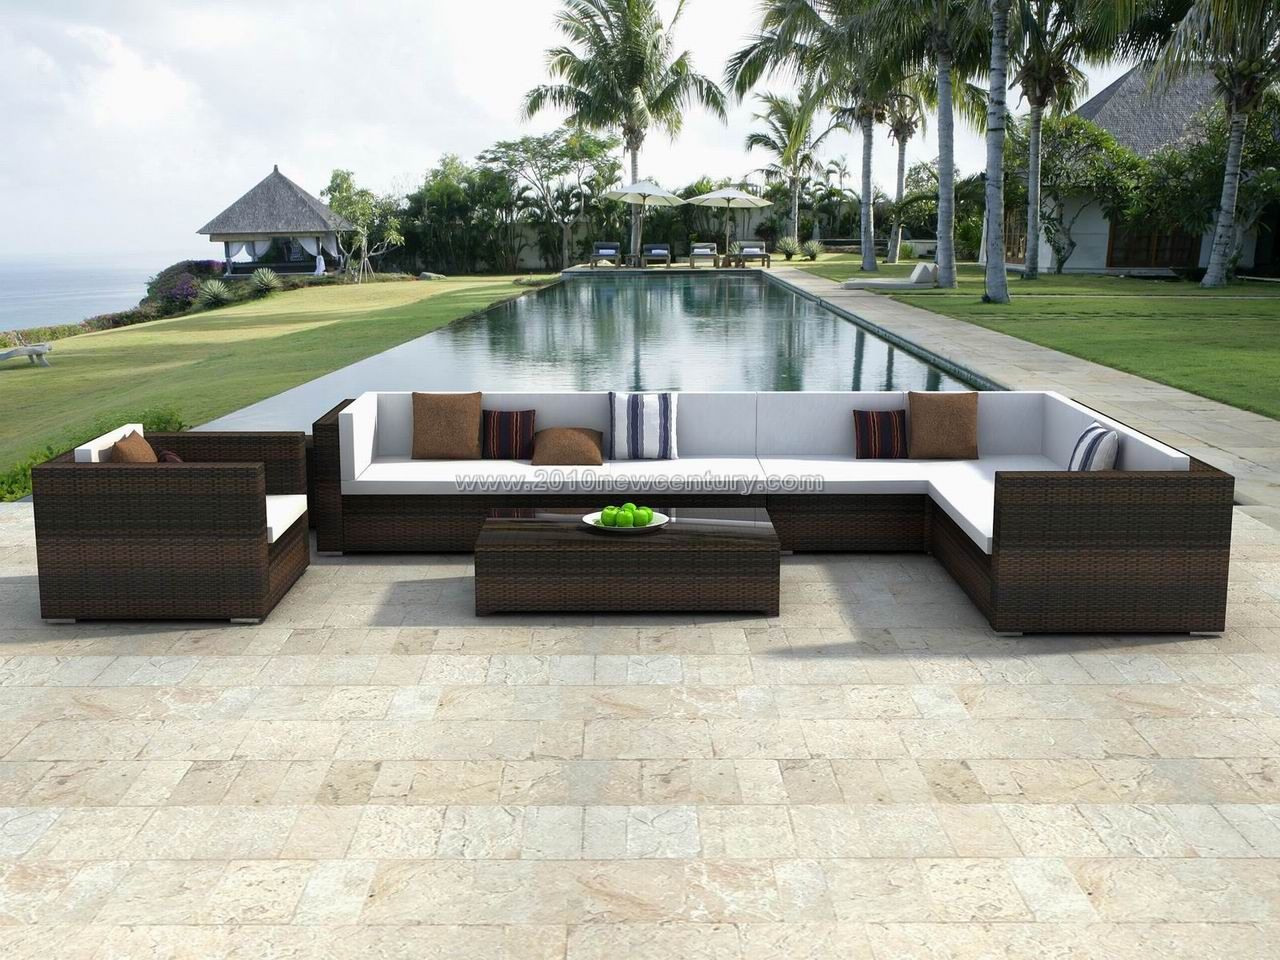 Weatherproof Rattan Garden Furniture Outdoor Furniture  # Muebles Mimbre Segunda Mano